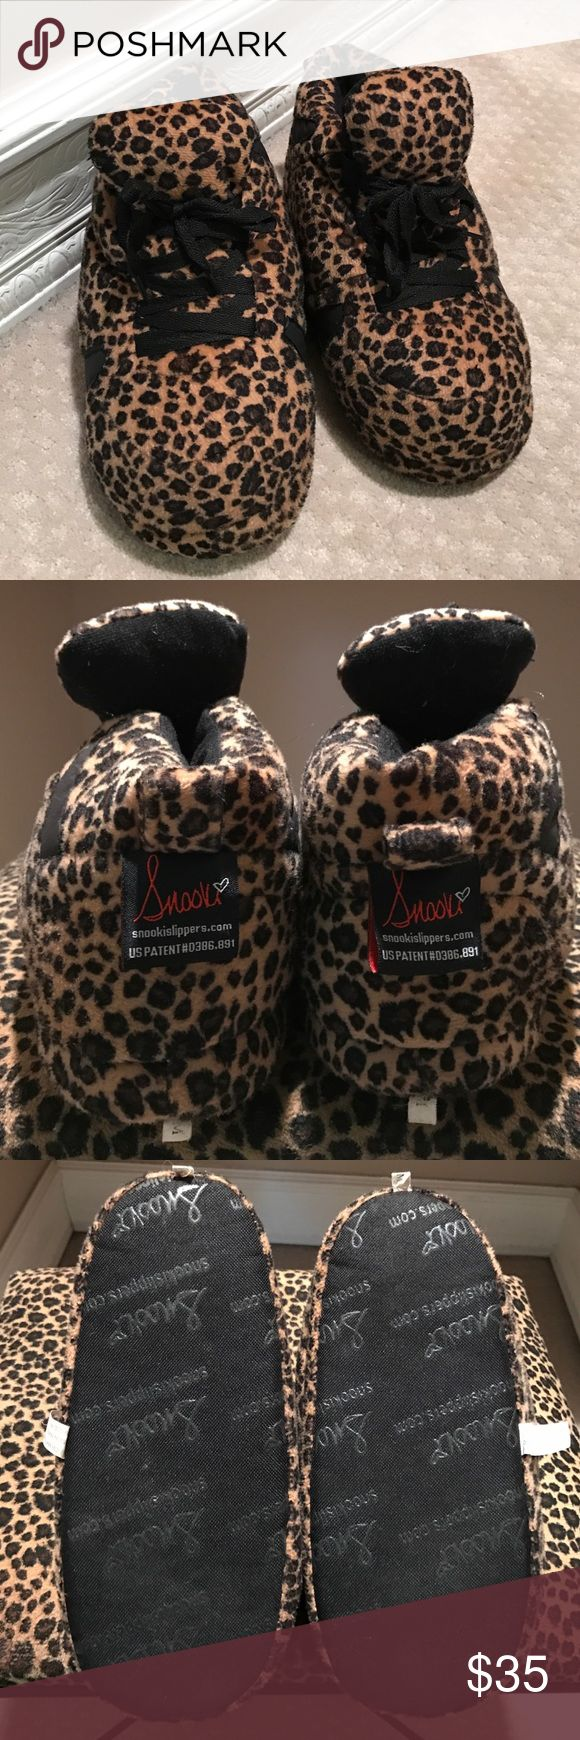 Snooki Animal Print Slippers Snooki Animal Print Slippers. Only worn once. In excellent condition. Snooki Shoes Slippers